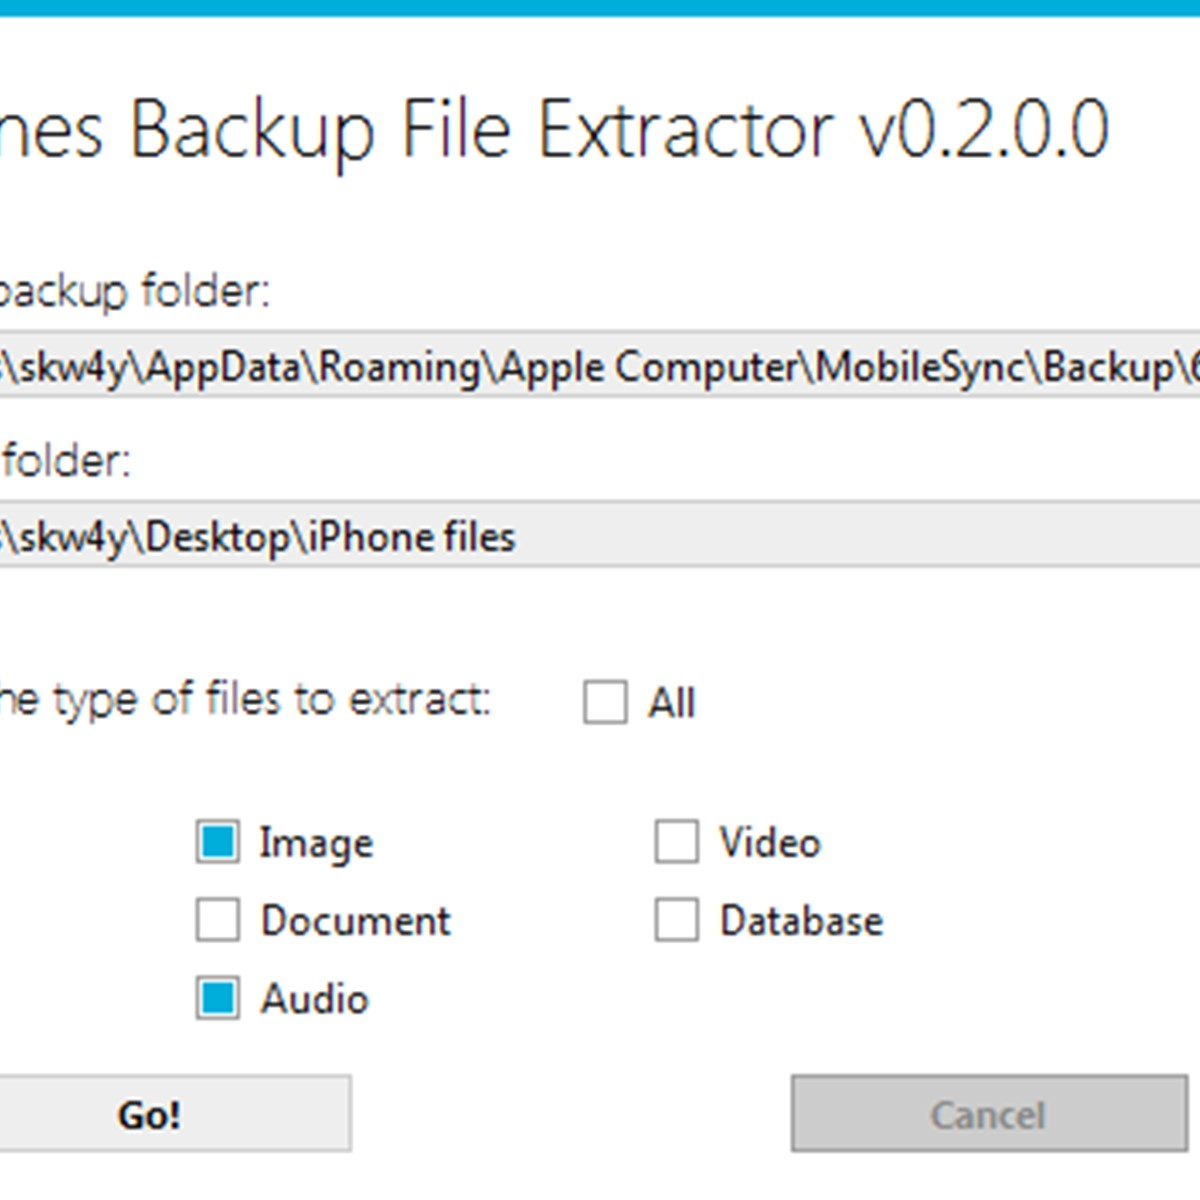 ITunes Backup File Extractor Alternatives And Similar